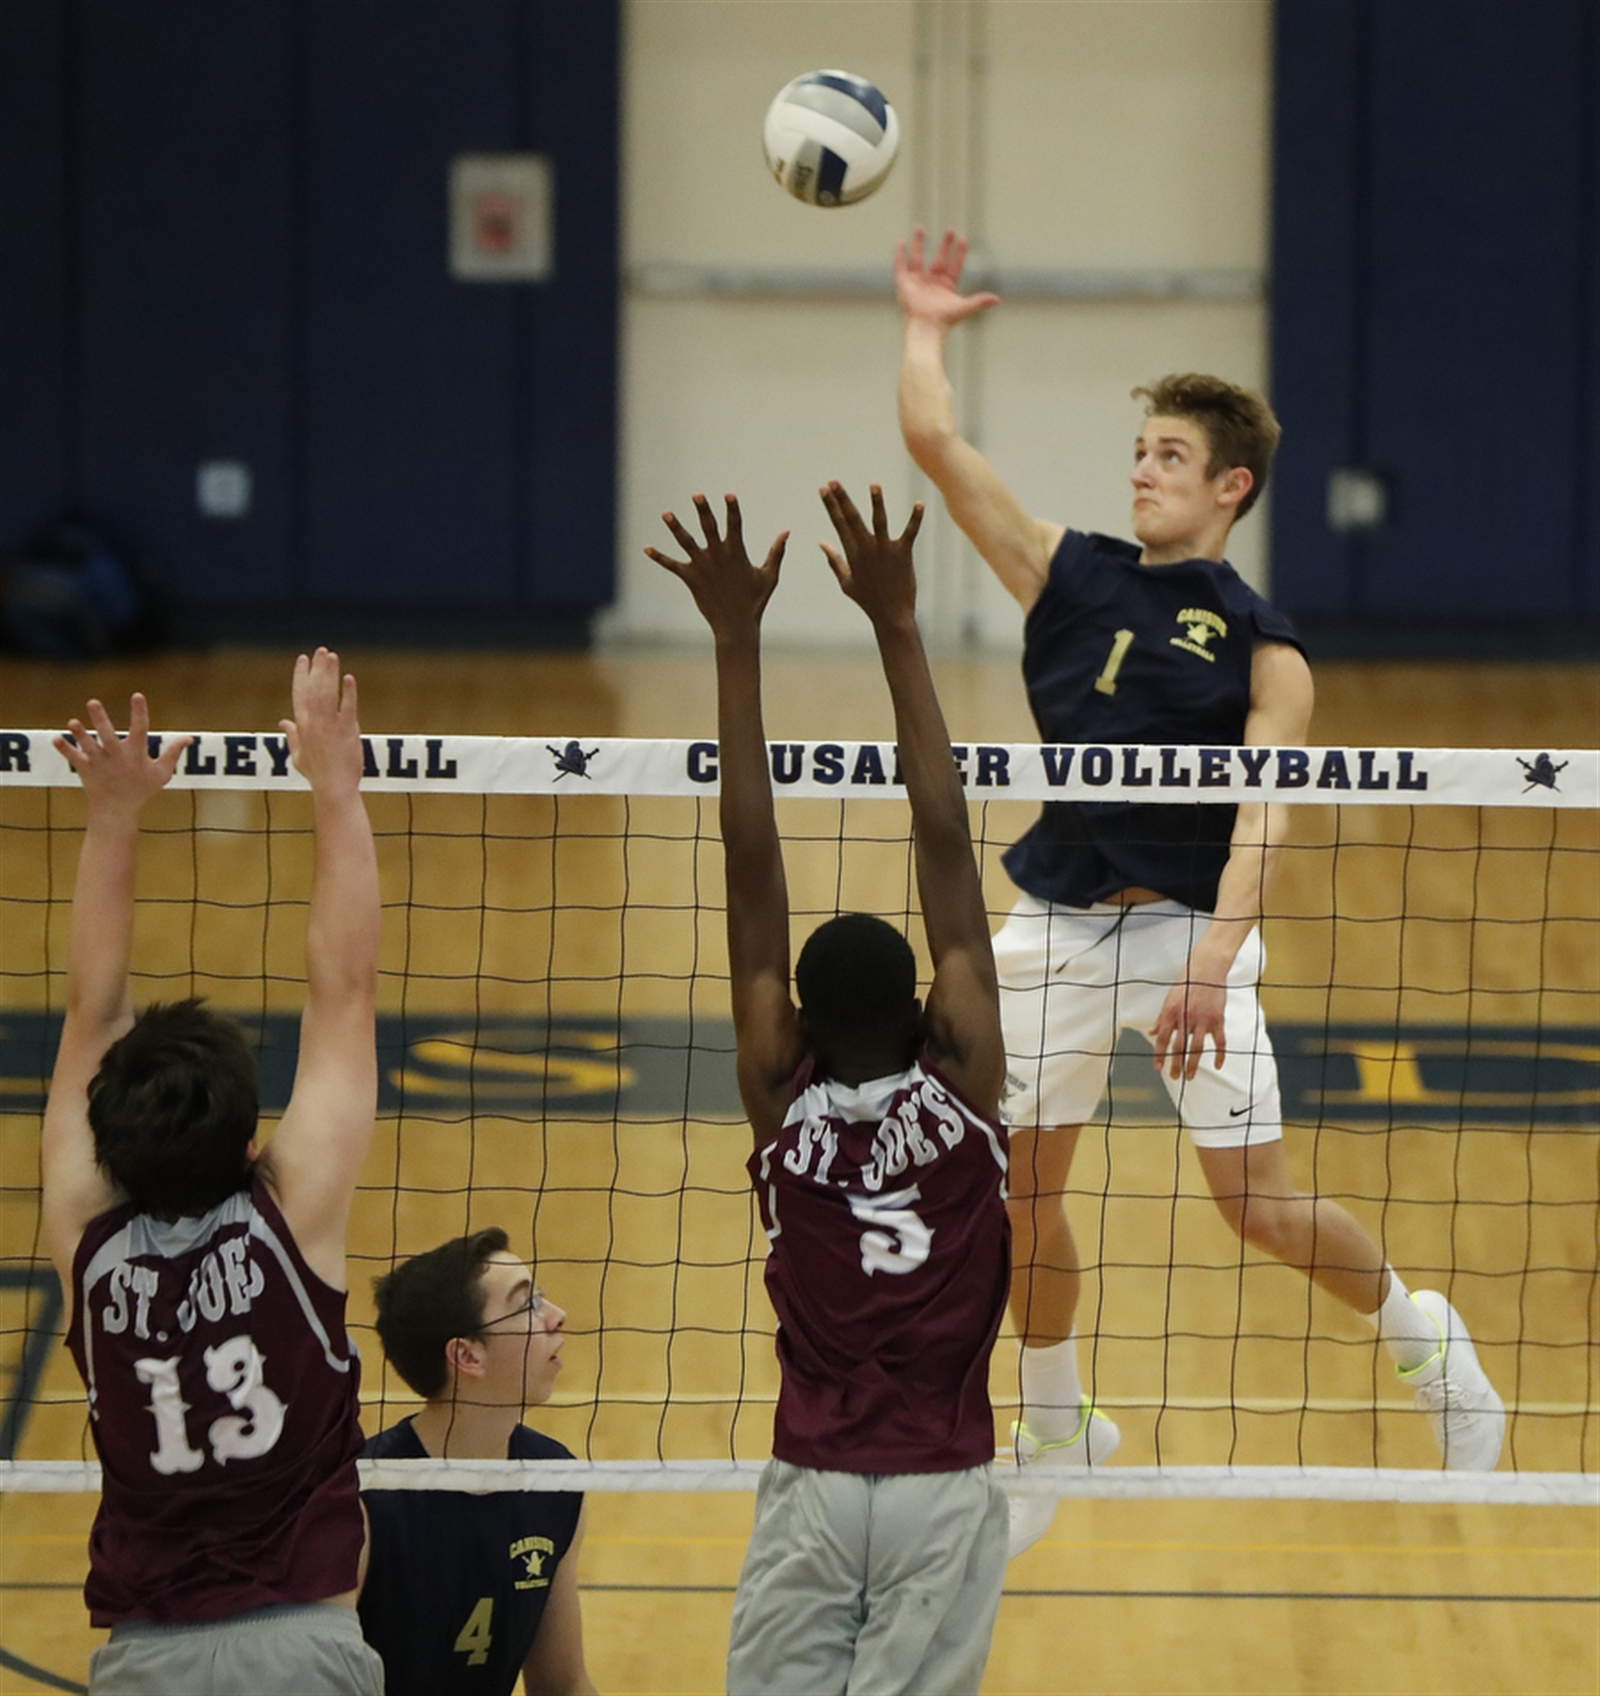 Canisius's Charles Palka returns a ball against St. Joe's during the second game at Canisius High School on Thursday, Sept. 22, 2016.  (Harry Scull Jr./Buffalo News)